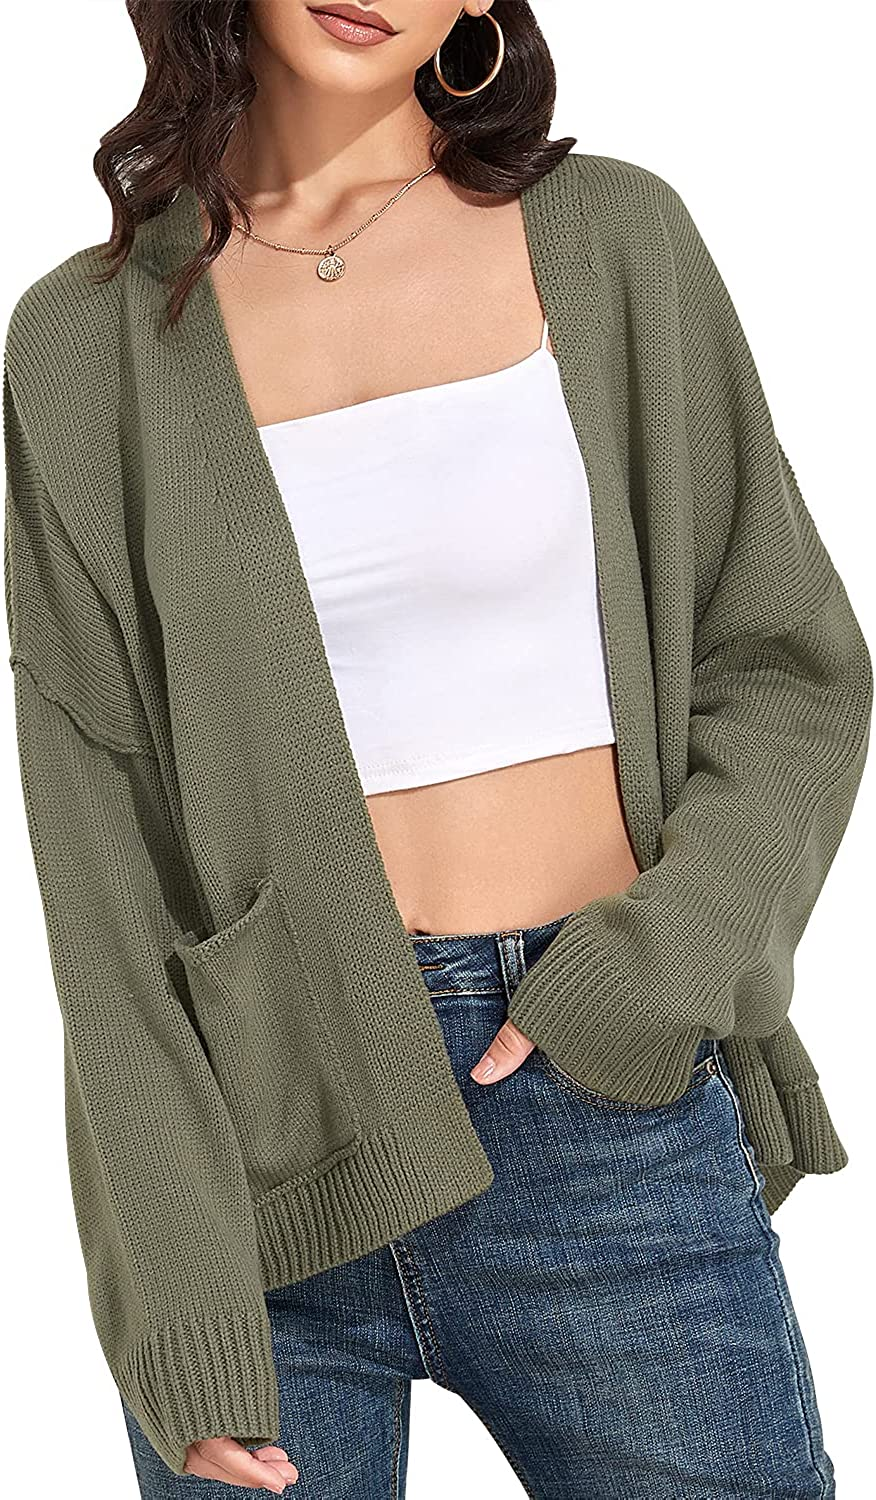 Carpetcom Women's Casual Loose Long Sleeve Drop Shoulder Open Front Knit Cardigan Sweater with Pockets